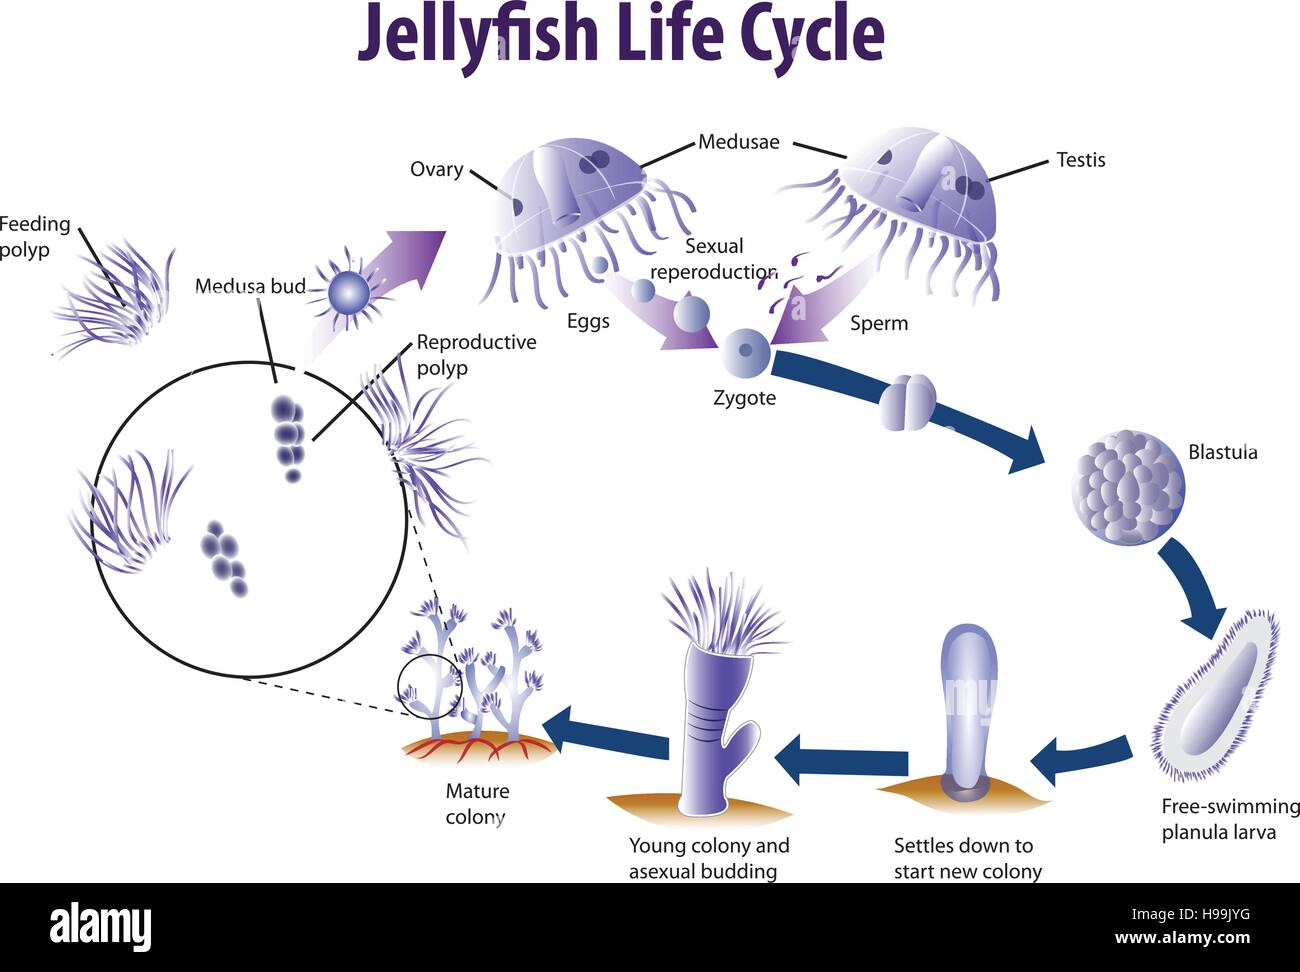 Queen Jellyfish Life Cycle Diagram - Circuit Connection Diagram •